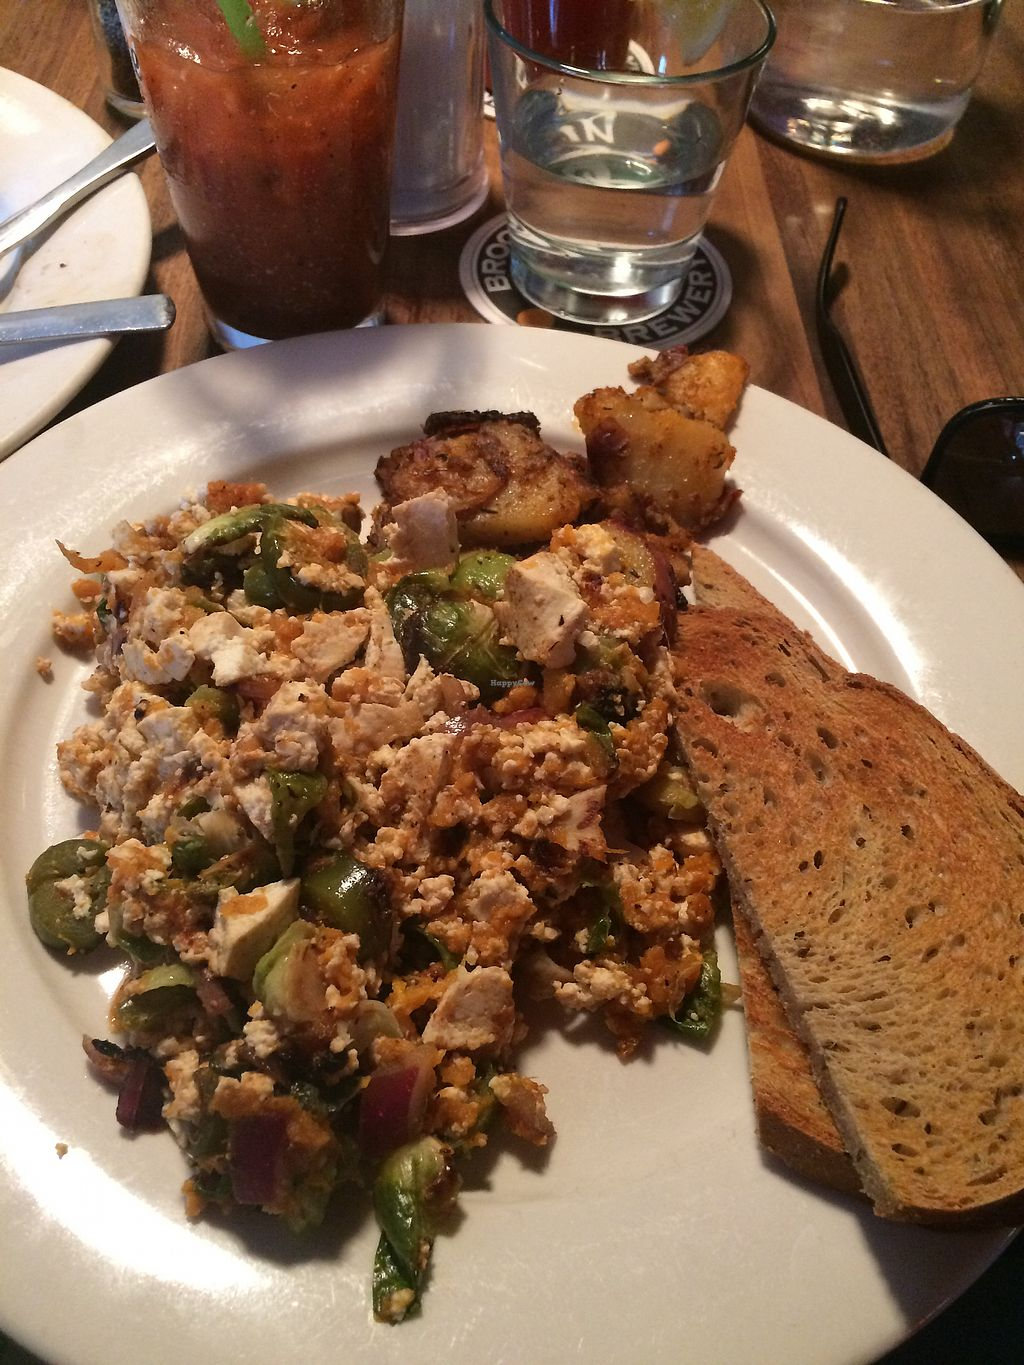 """Photo of Julian's  by <a href=""""/members/profile/RyanSt"""">RyanSt</a> <br/>Tofu scramble  <br/> October 5, 2017  - <a href='/contact/abuse/image/9822/311920'>Report</a>"""